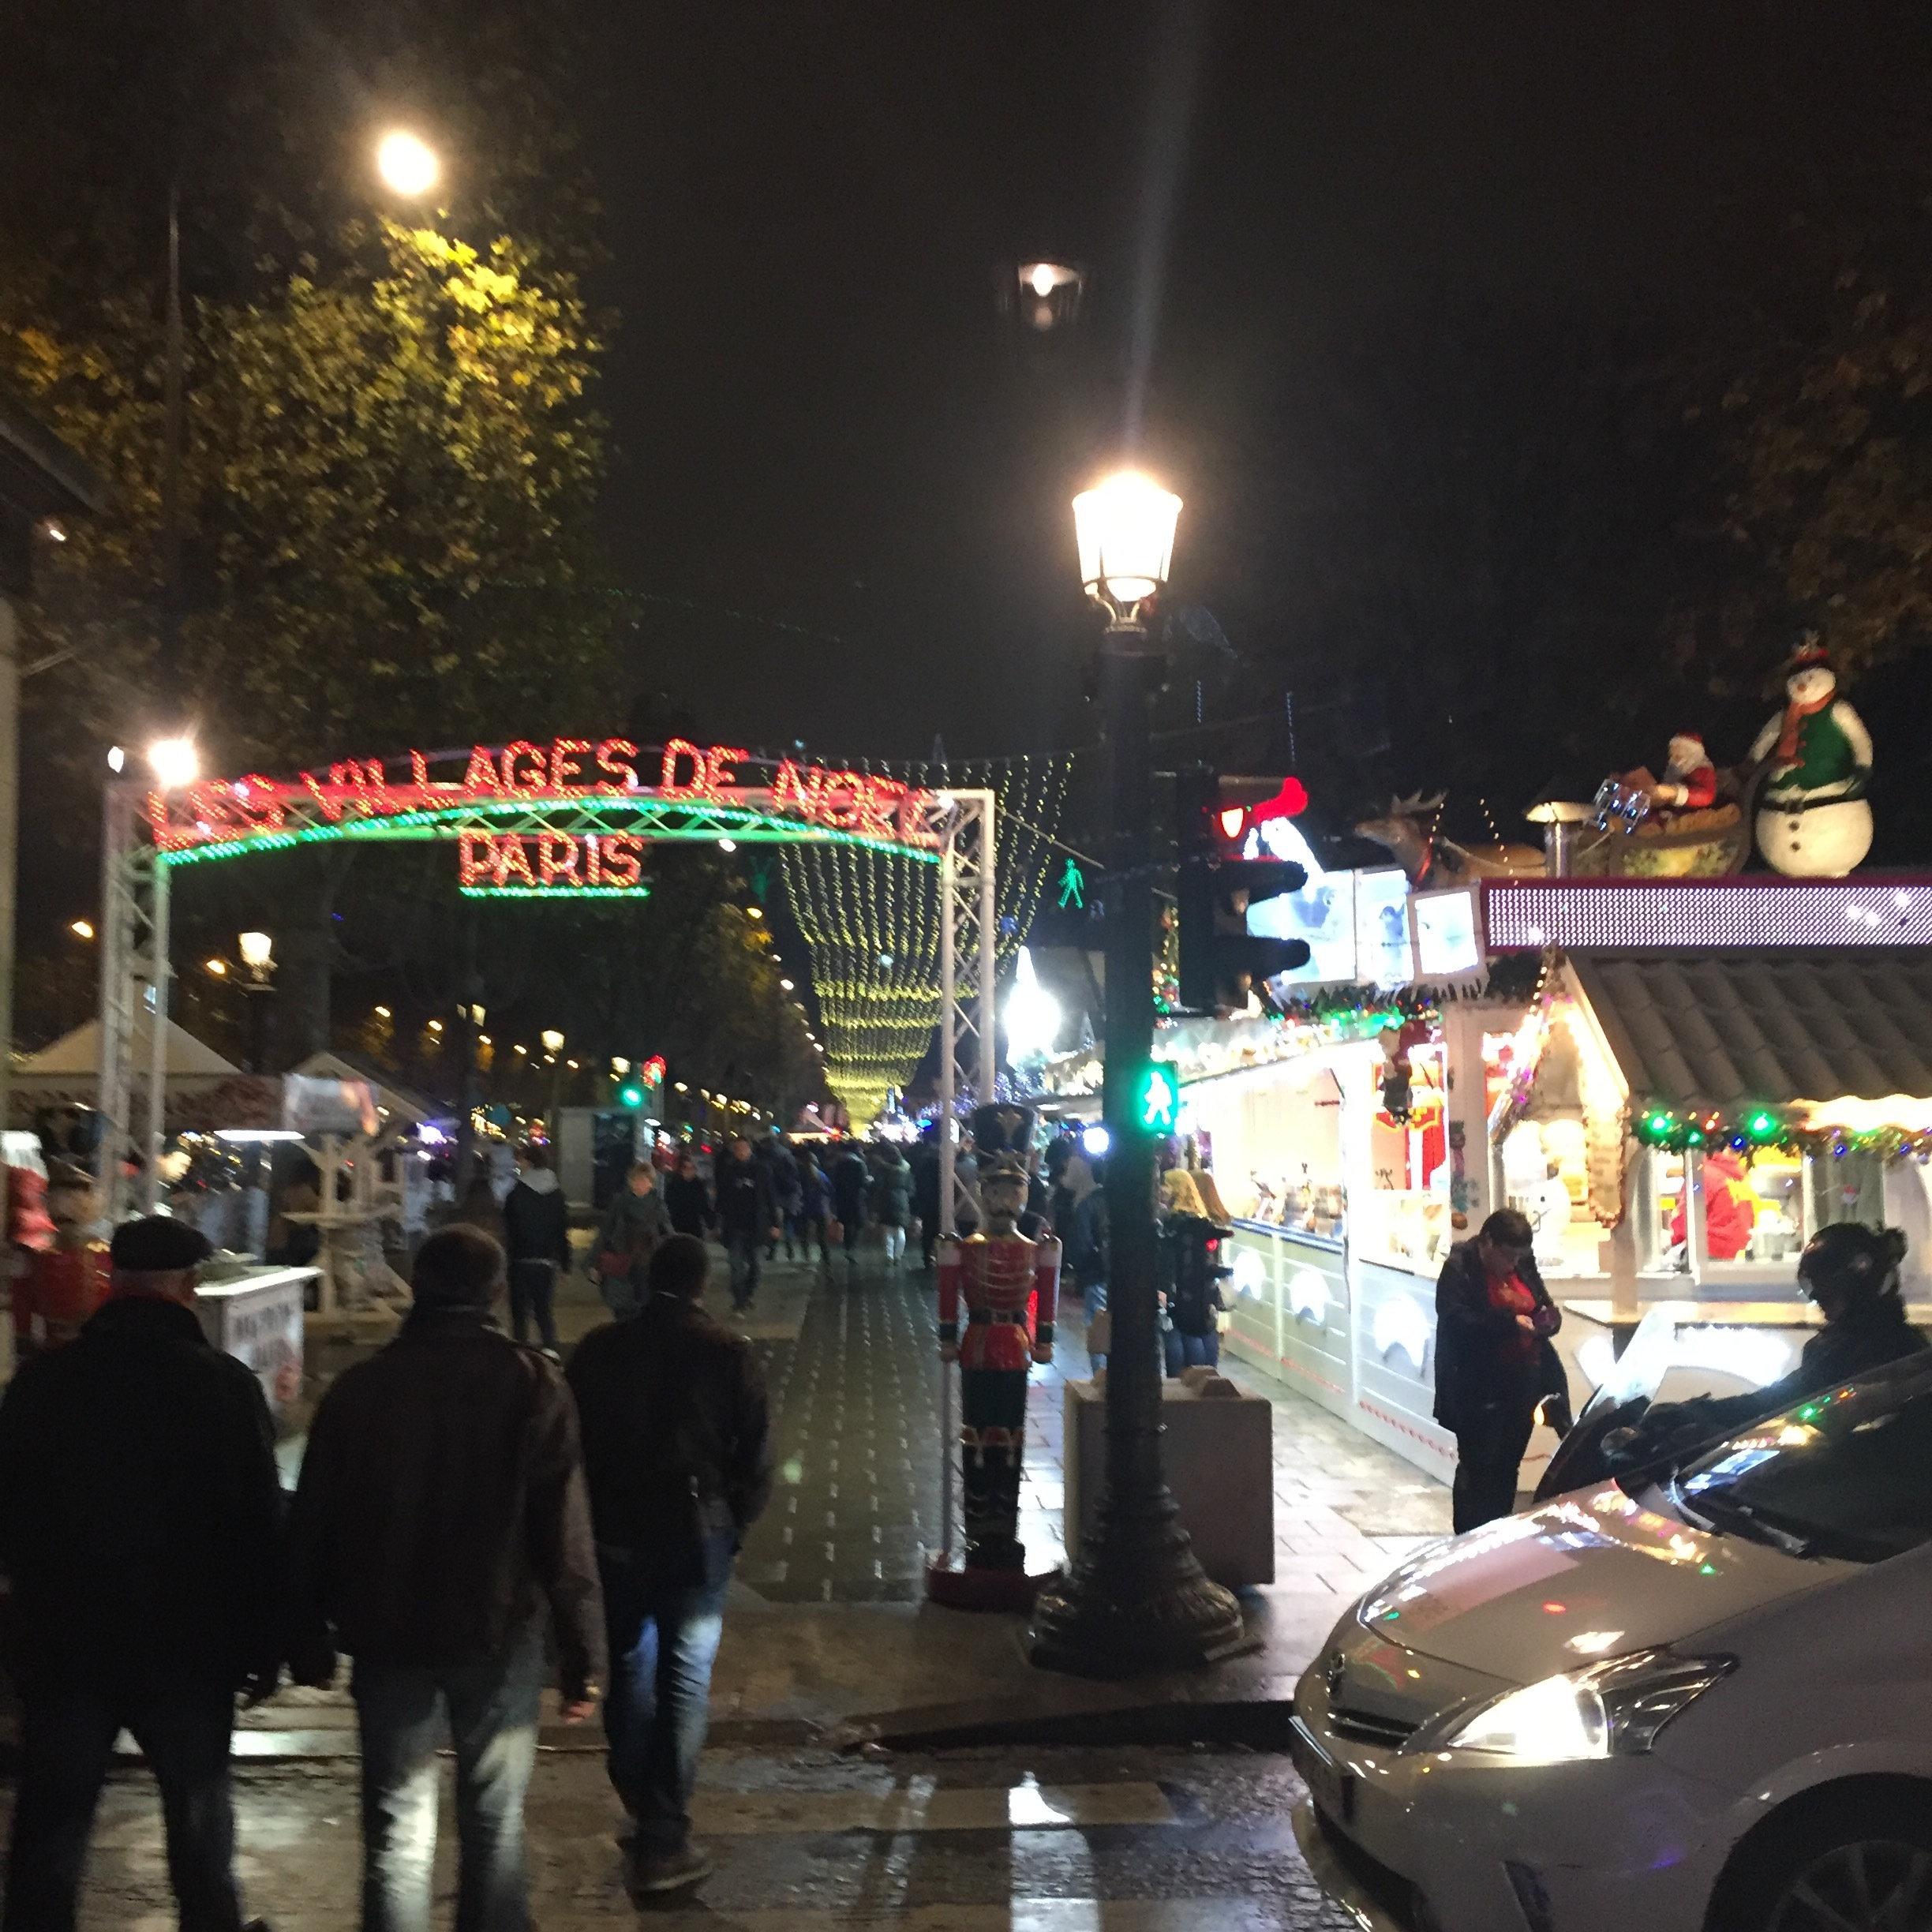 Entering the Paris Christmas Village!